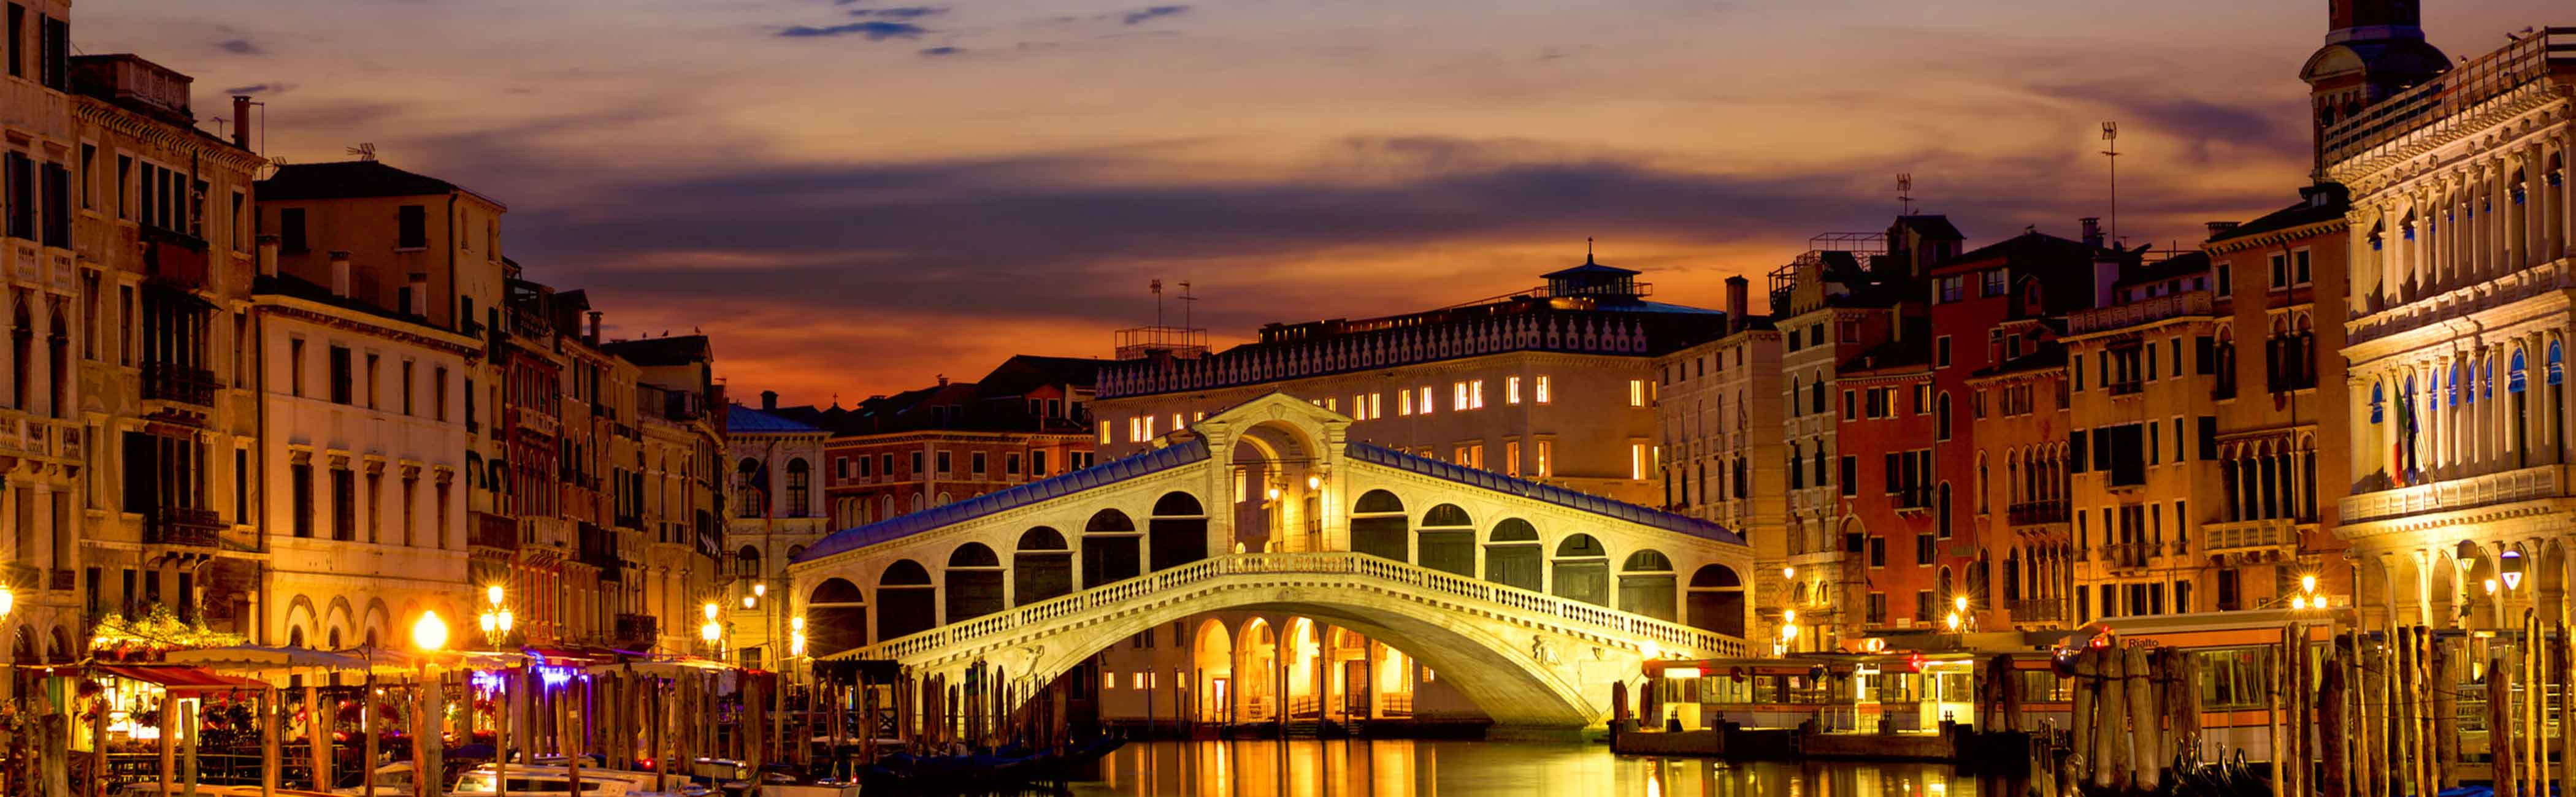 View of the bridge over the grand cannal in Venice.